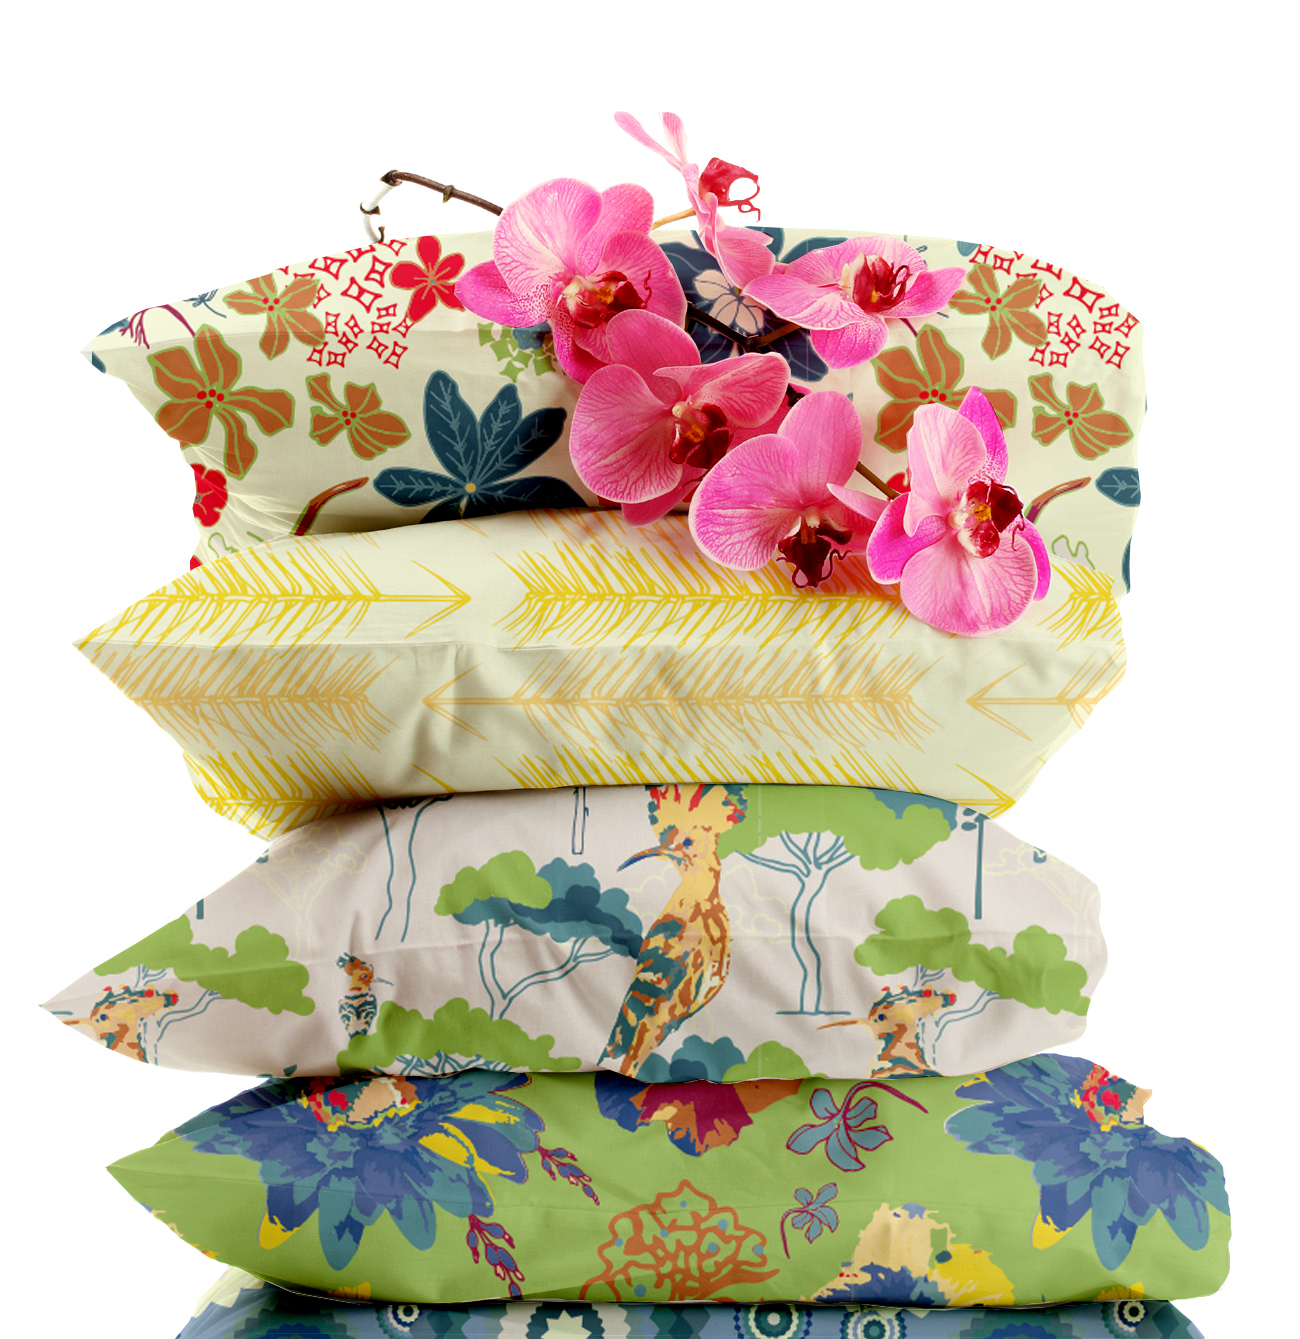 Clifftop-Garden-Cushions-Mockup copy.jpg